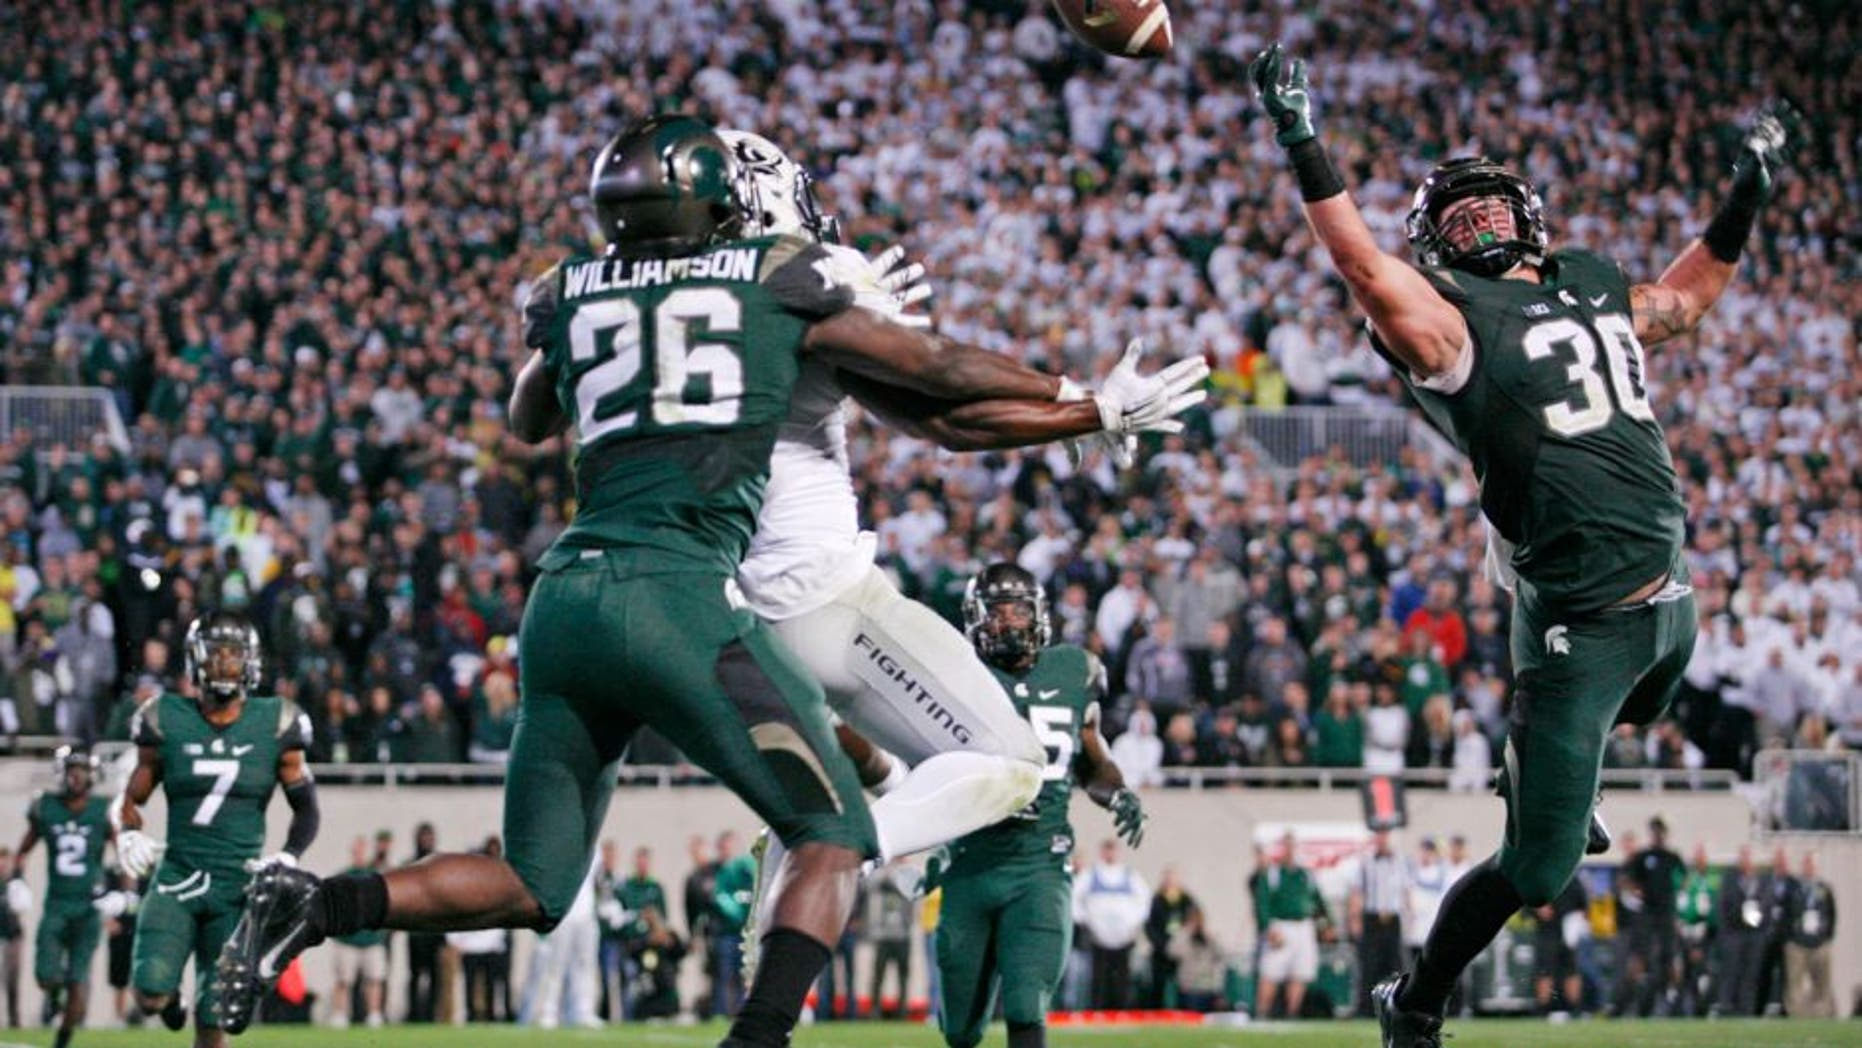 Sep 12, 2015; East Lansing, MI, USA; Michigan State Spartans linebacker Riley Bullough (30) and safety Rj Williamson (26) defend Oregon Ducks wide receiver Byron Marshall (9) during the fourth quarter at Spartan Stadium. Spartans beat the Ducks 31-28. Mandatory Credit: Raj Mehta-USA TODAY Sports